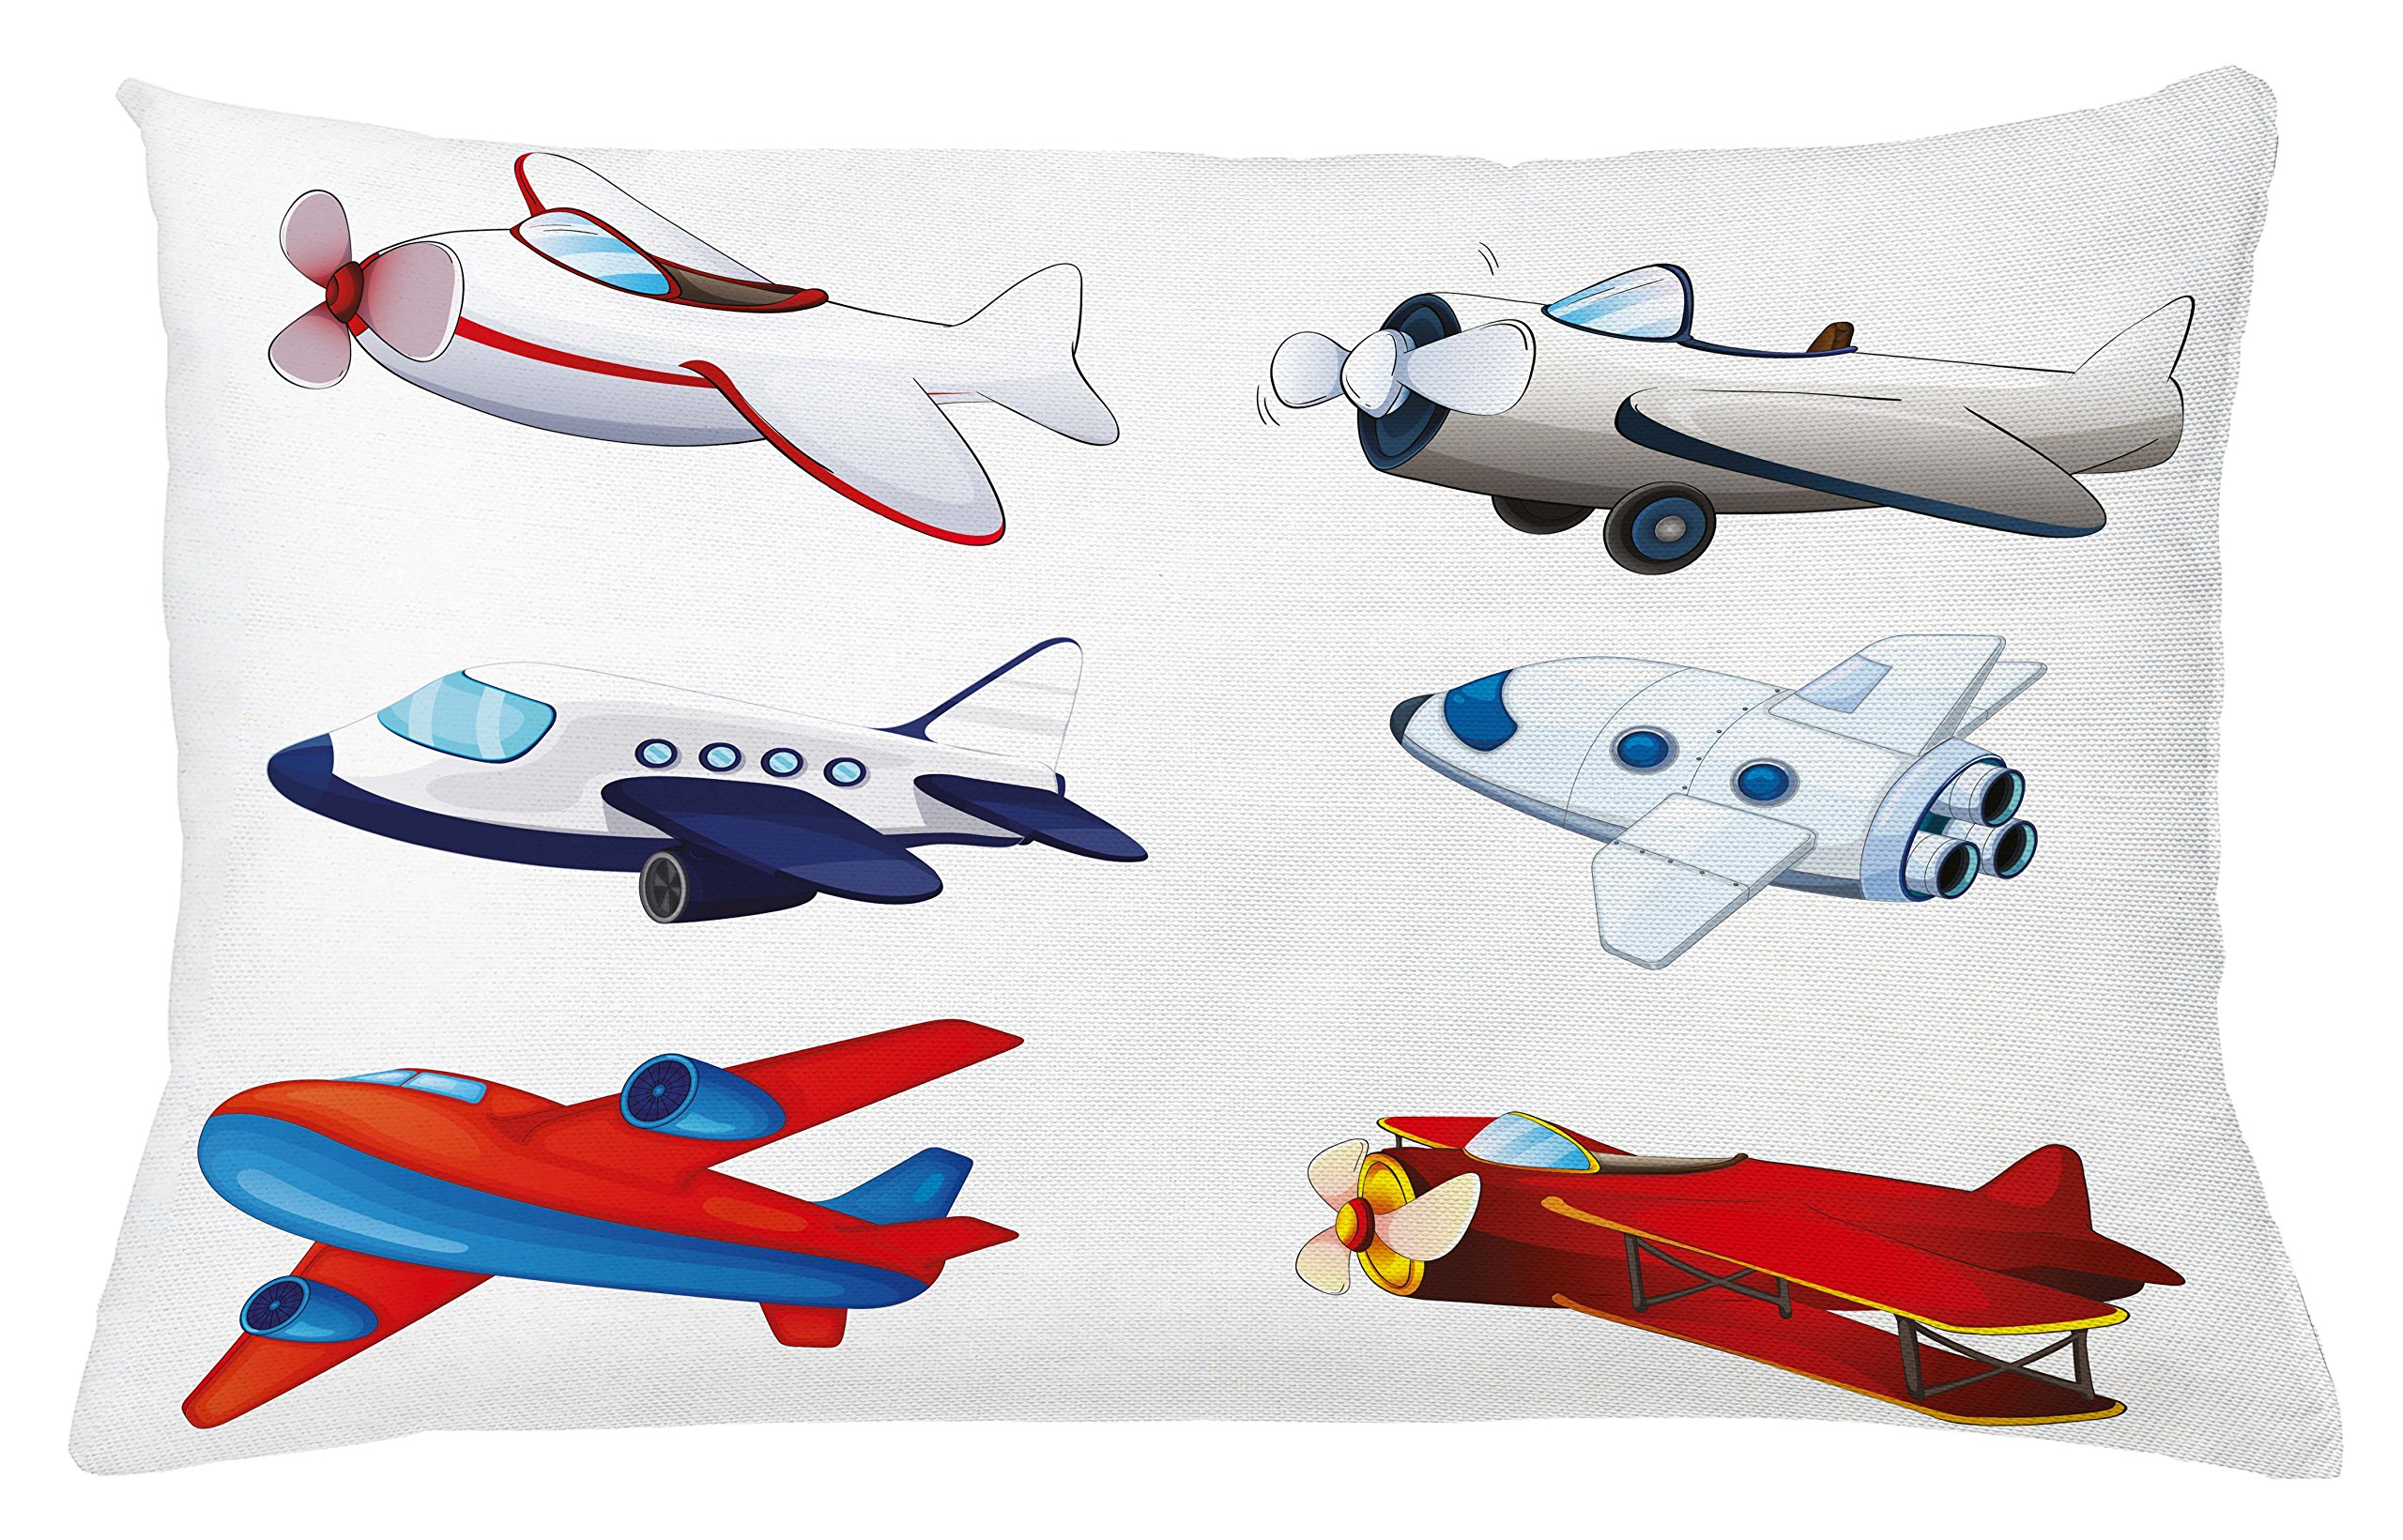 Lunarable Boy's Room Throw Pillow Cushion Cover, Varied Airplanes in Cartoon Style Animation Inspired Colorful Vehicles Air Way, Decorative Accent Pillow Case, 26 W X 16 L inches, Multicolor